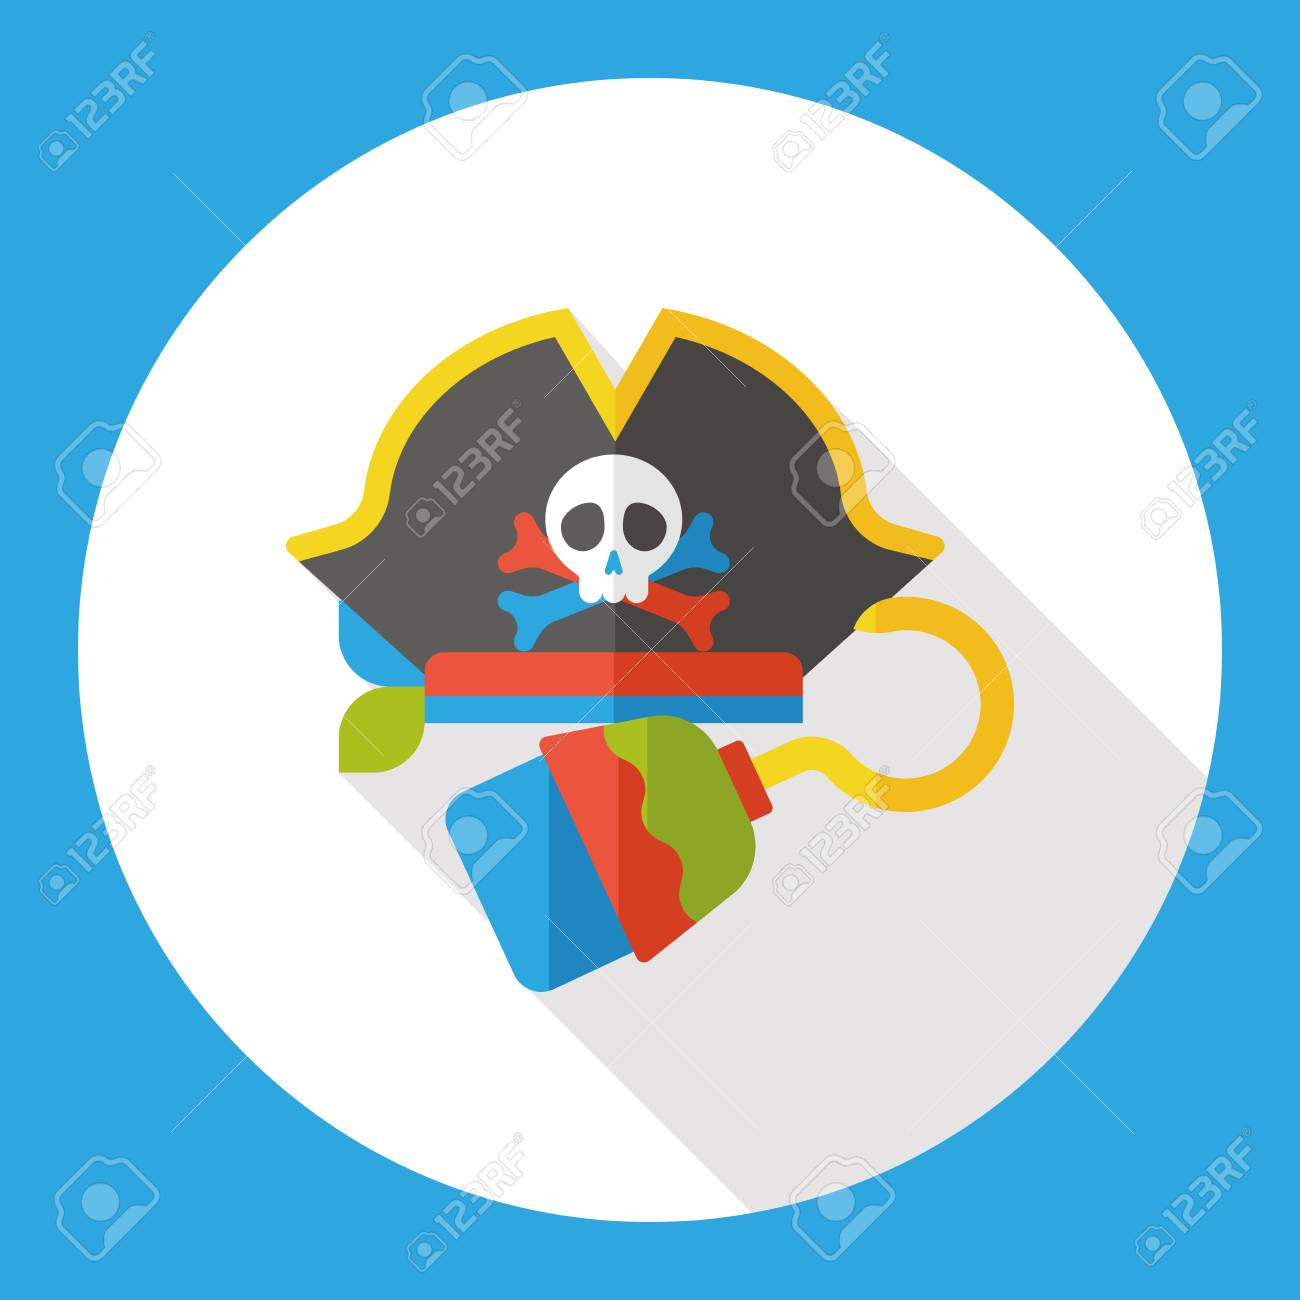 5a0b19a4 Pirate Hat Flat Icon Royalty Free Cliparts, Vectors, And Stock ...